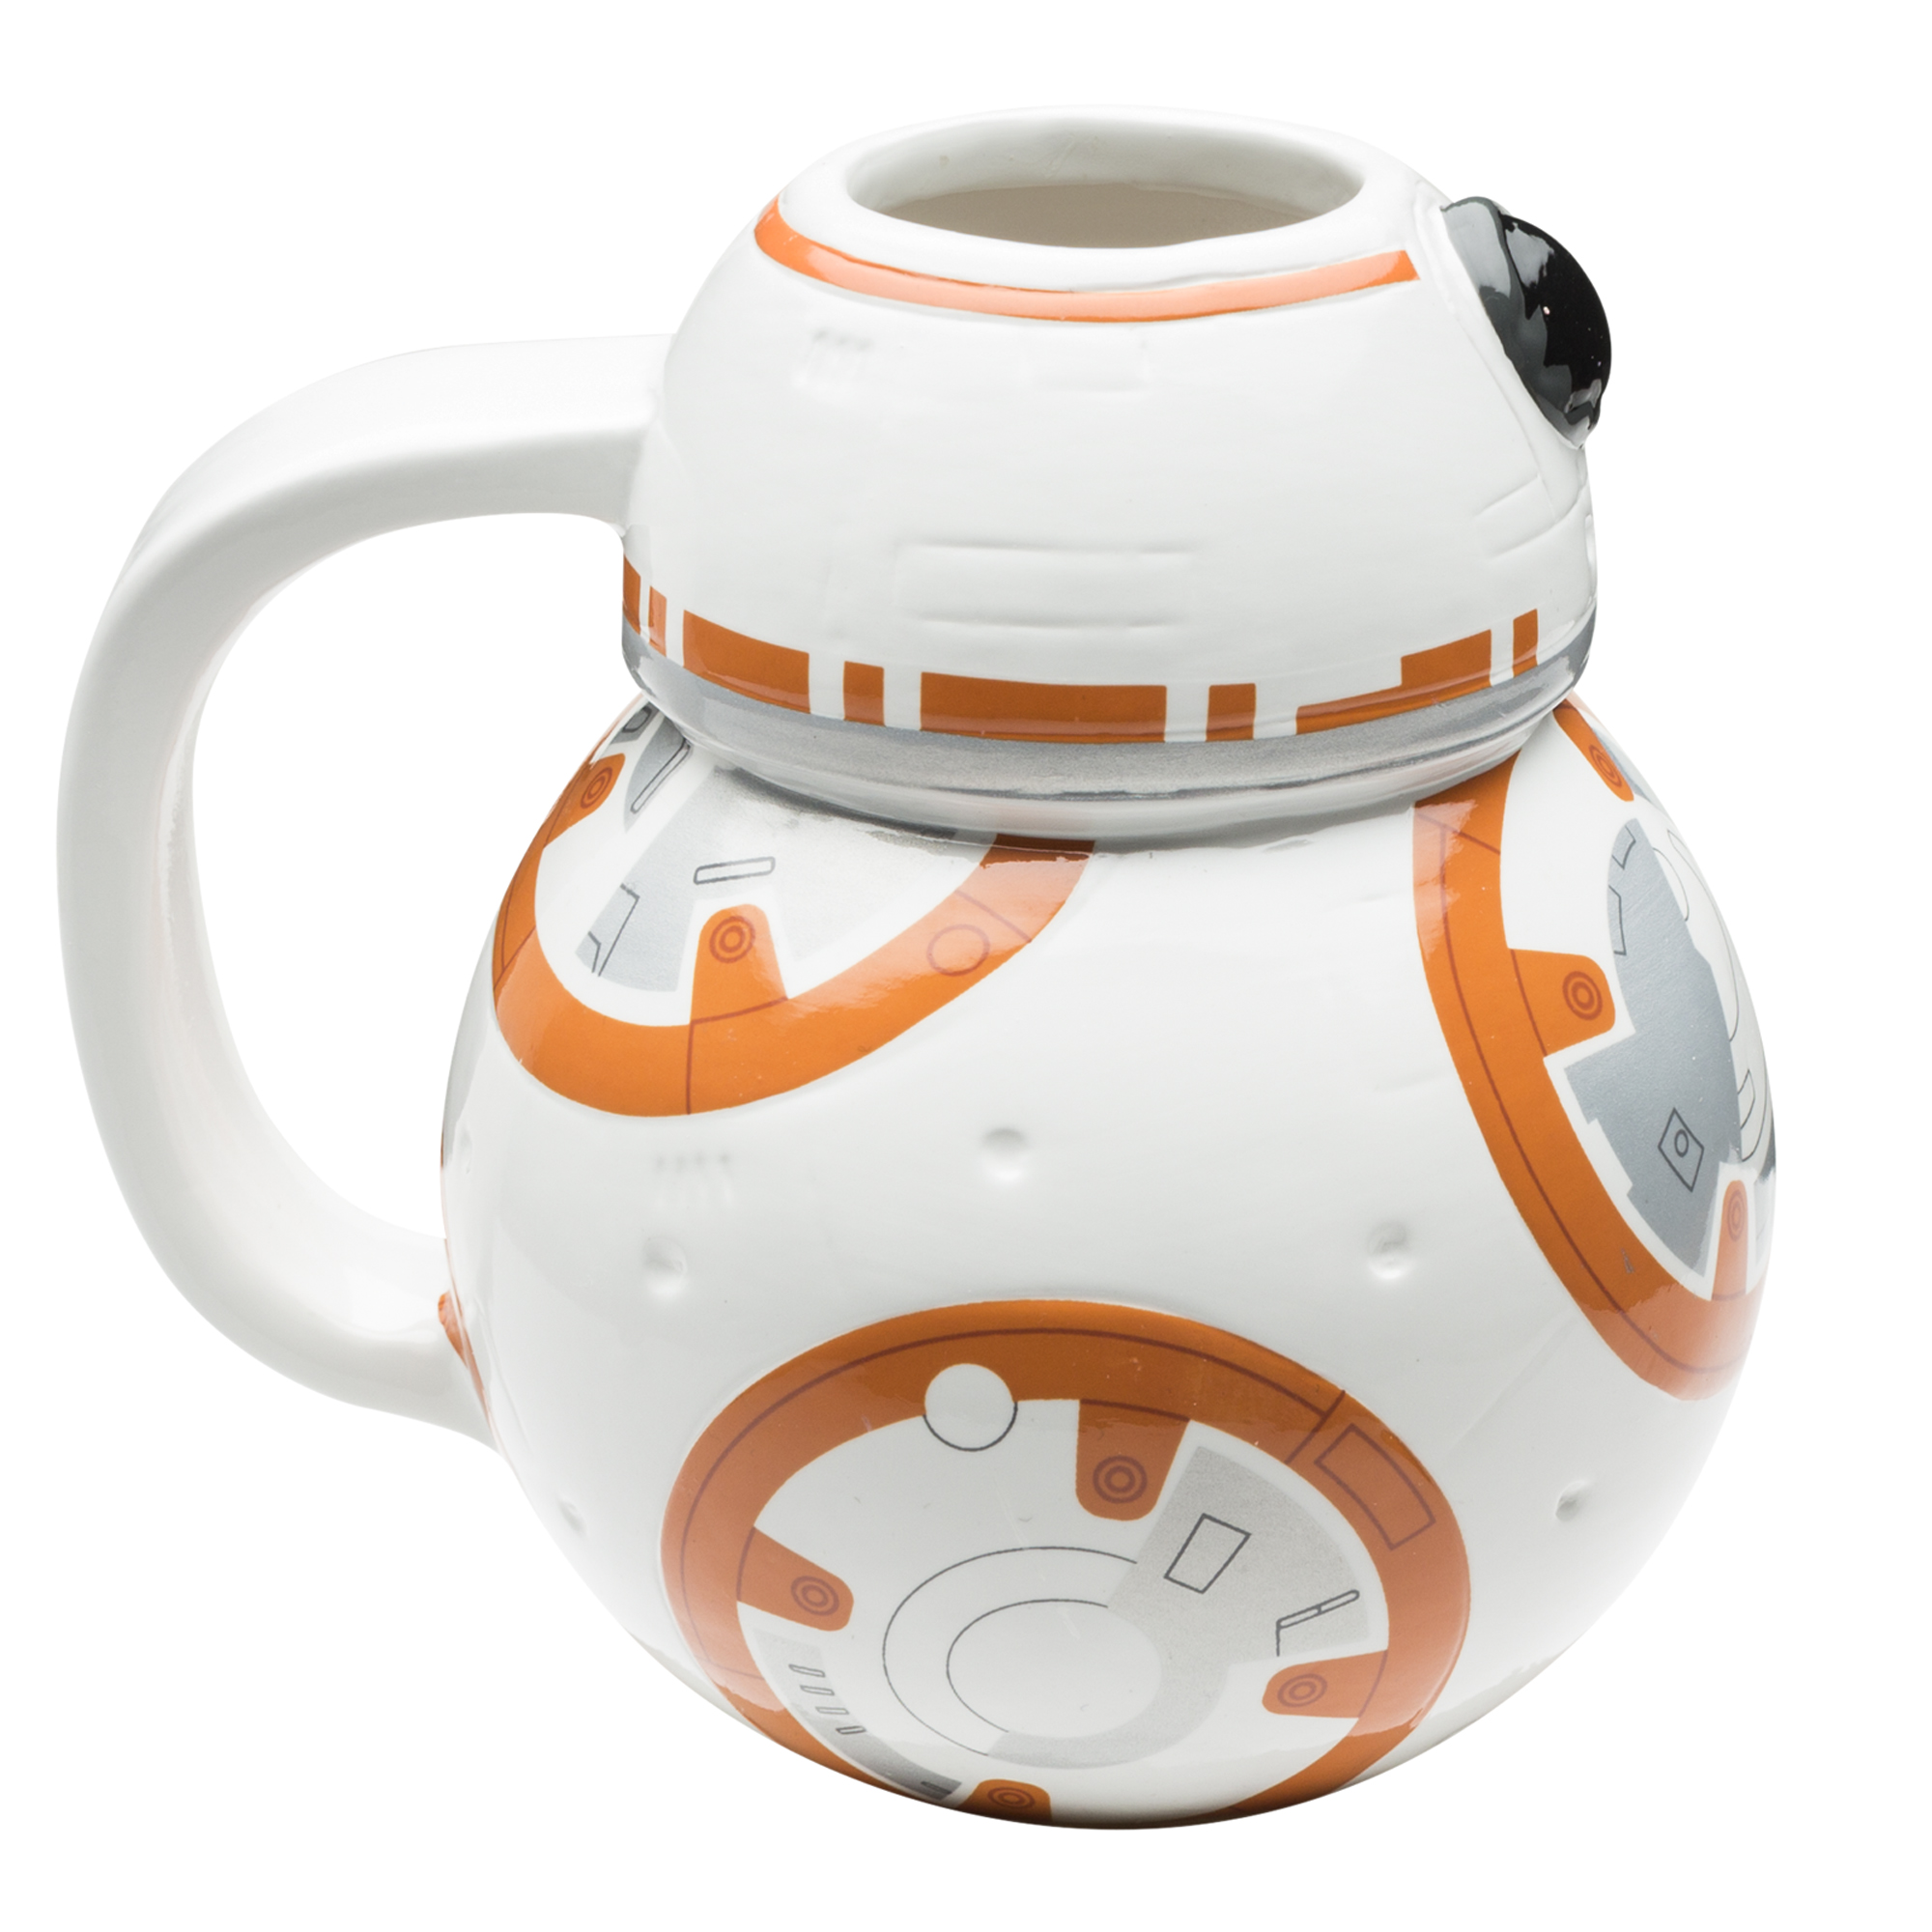 Star Wars Ceramic Coffee Mug, BB-8 slideshow image 5